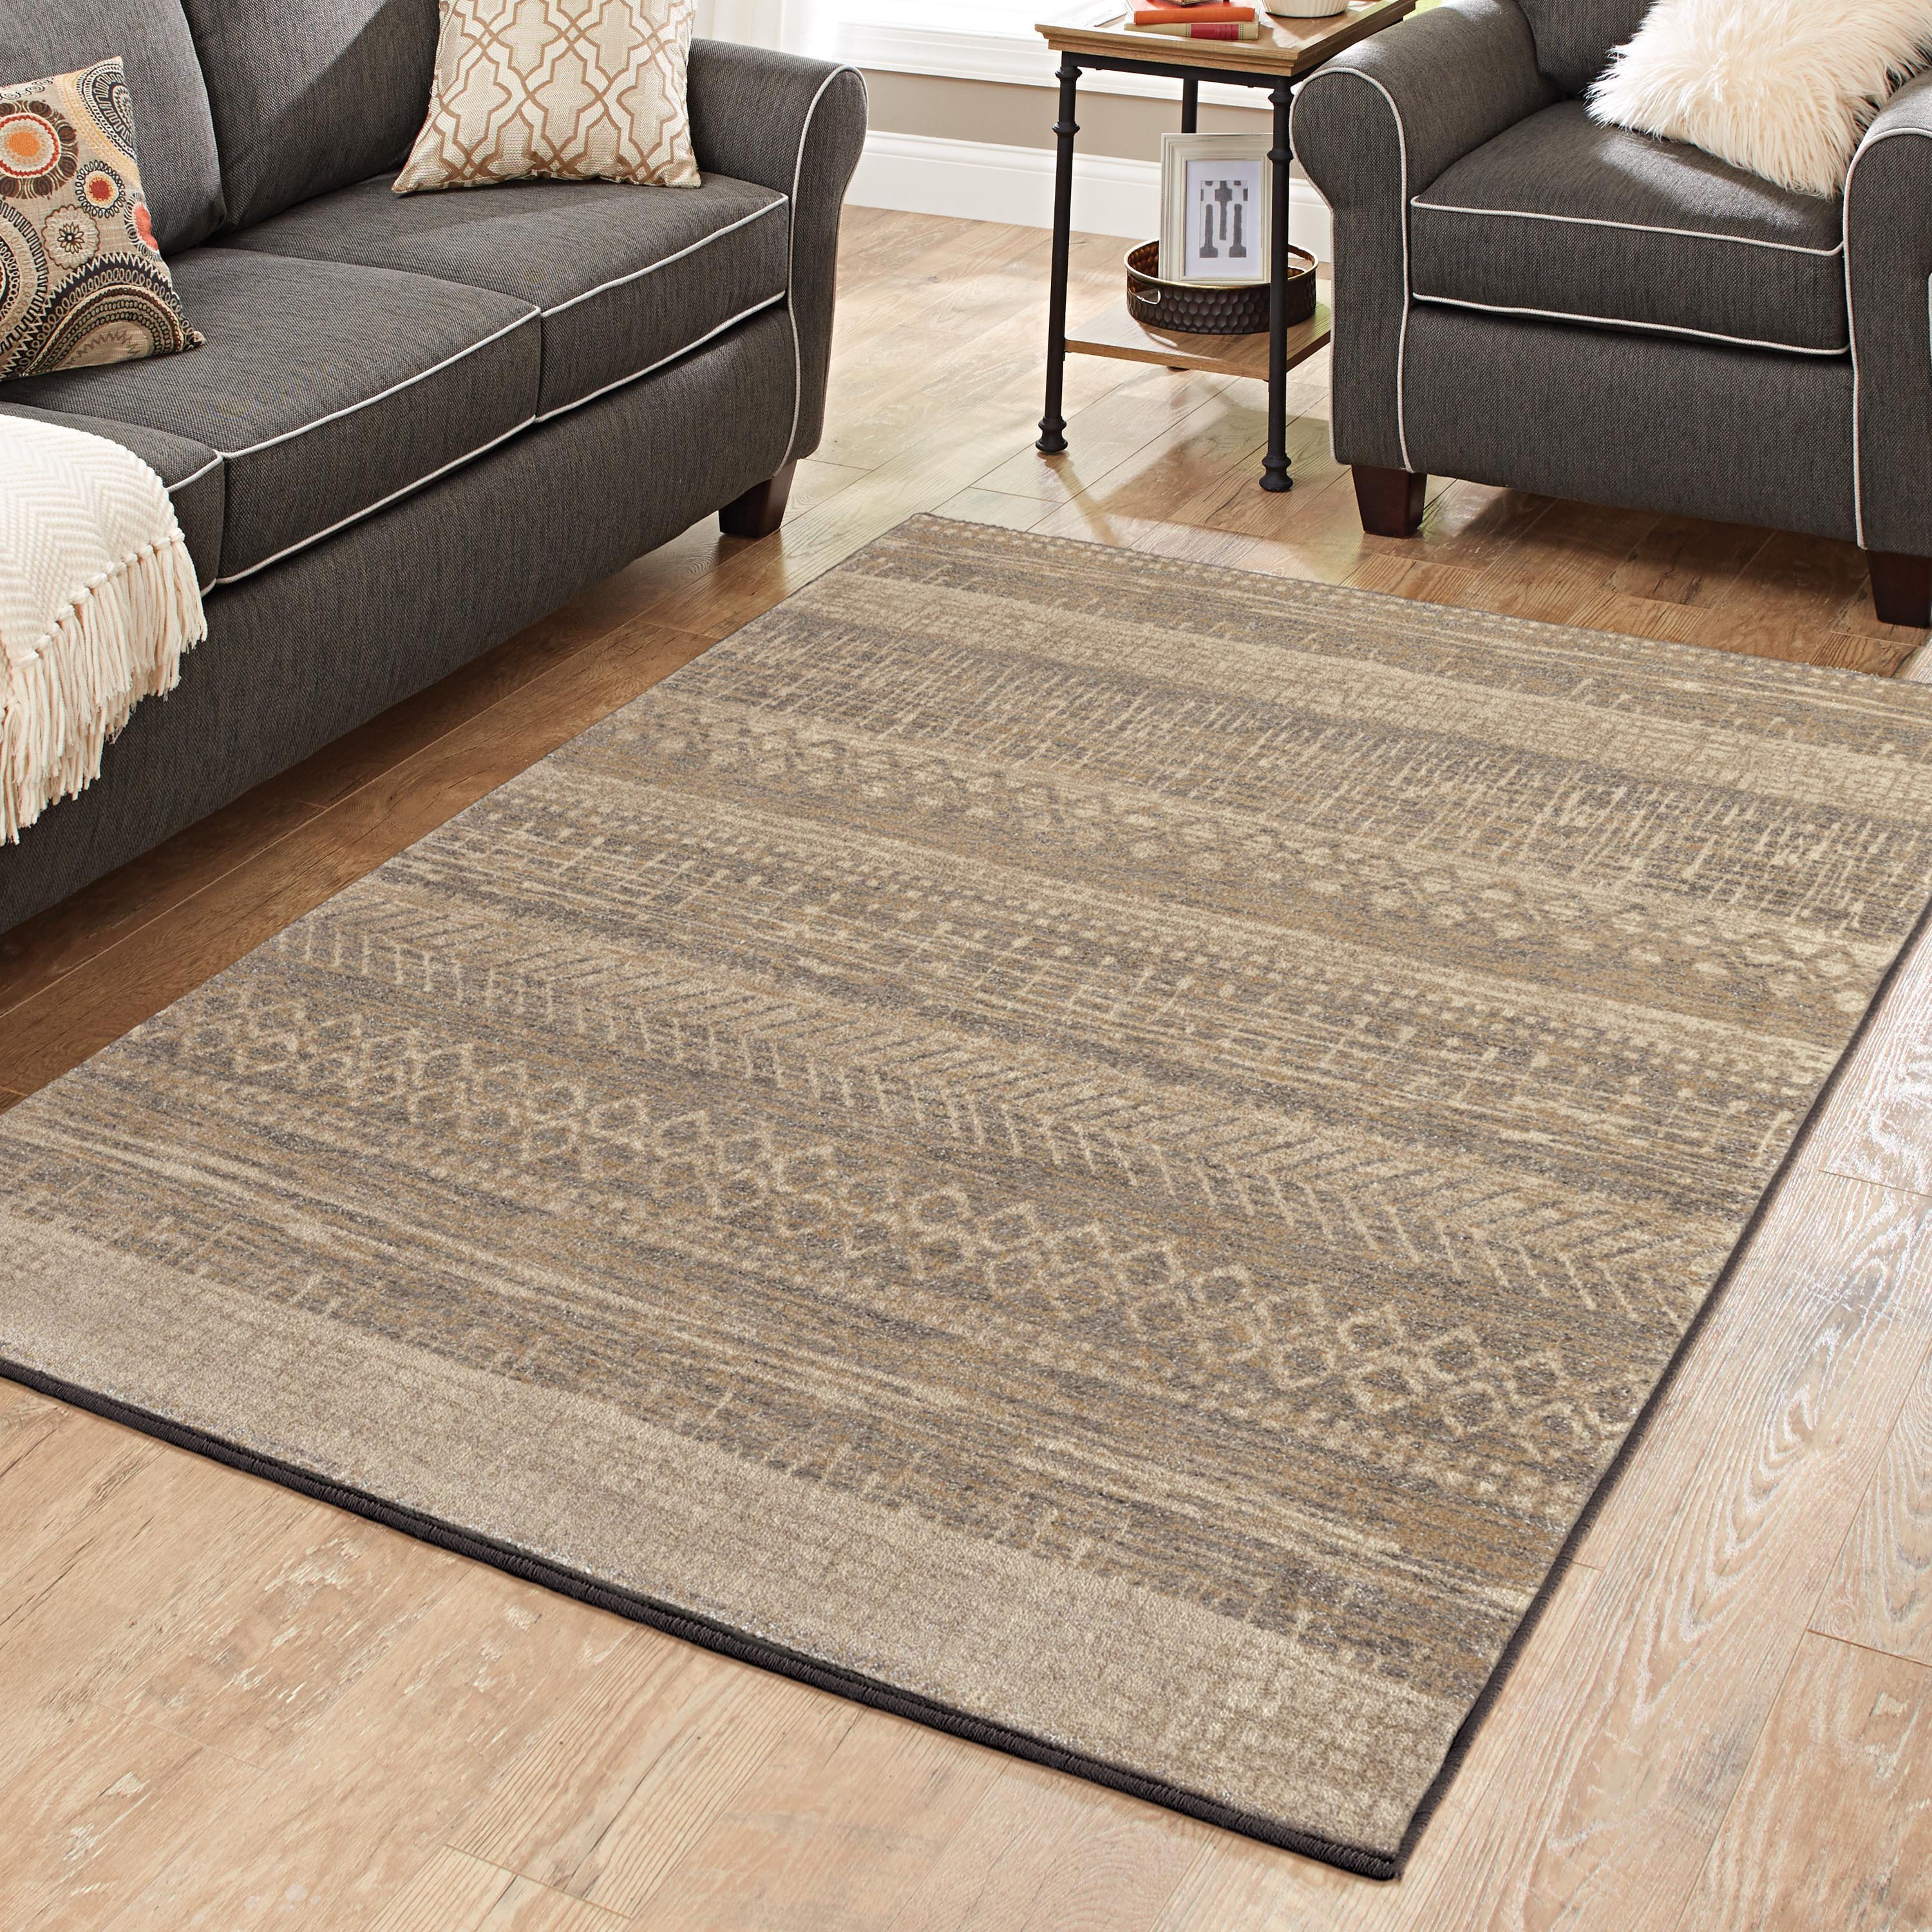 Area Rug for Bedroom Size Awesome Better Homes & Gardens Village thatch area Rug Walmart